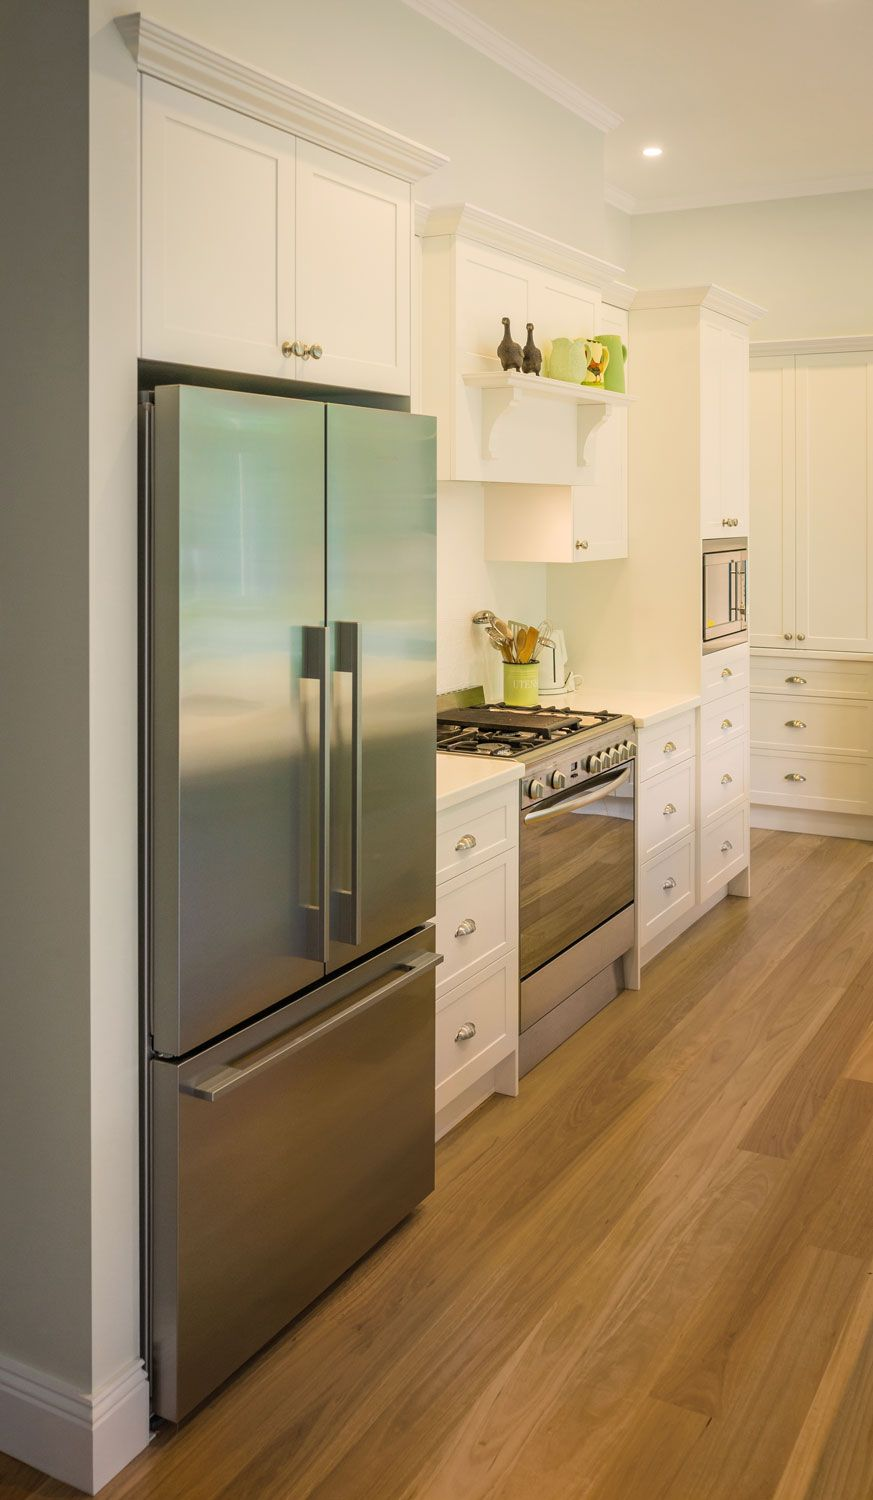 A Kitchen Envy Project Installed At Wentworth Falls Australia It Is A Traditional Styled Kitc With Images Traditional Kitchen Design Kitchen Cabinets Kitchen Cabinetry